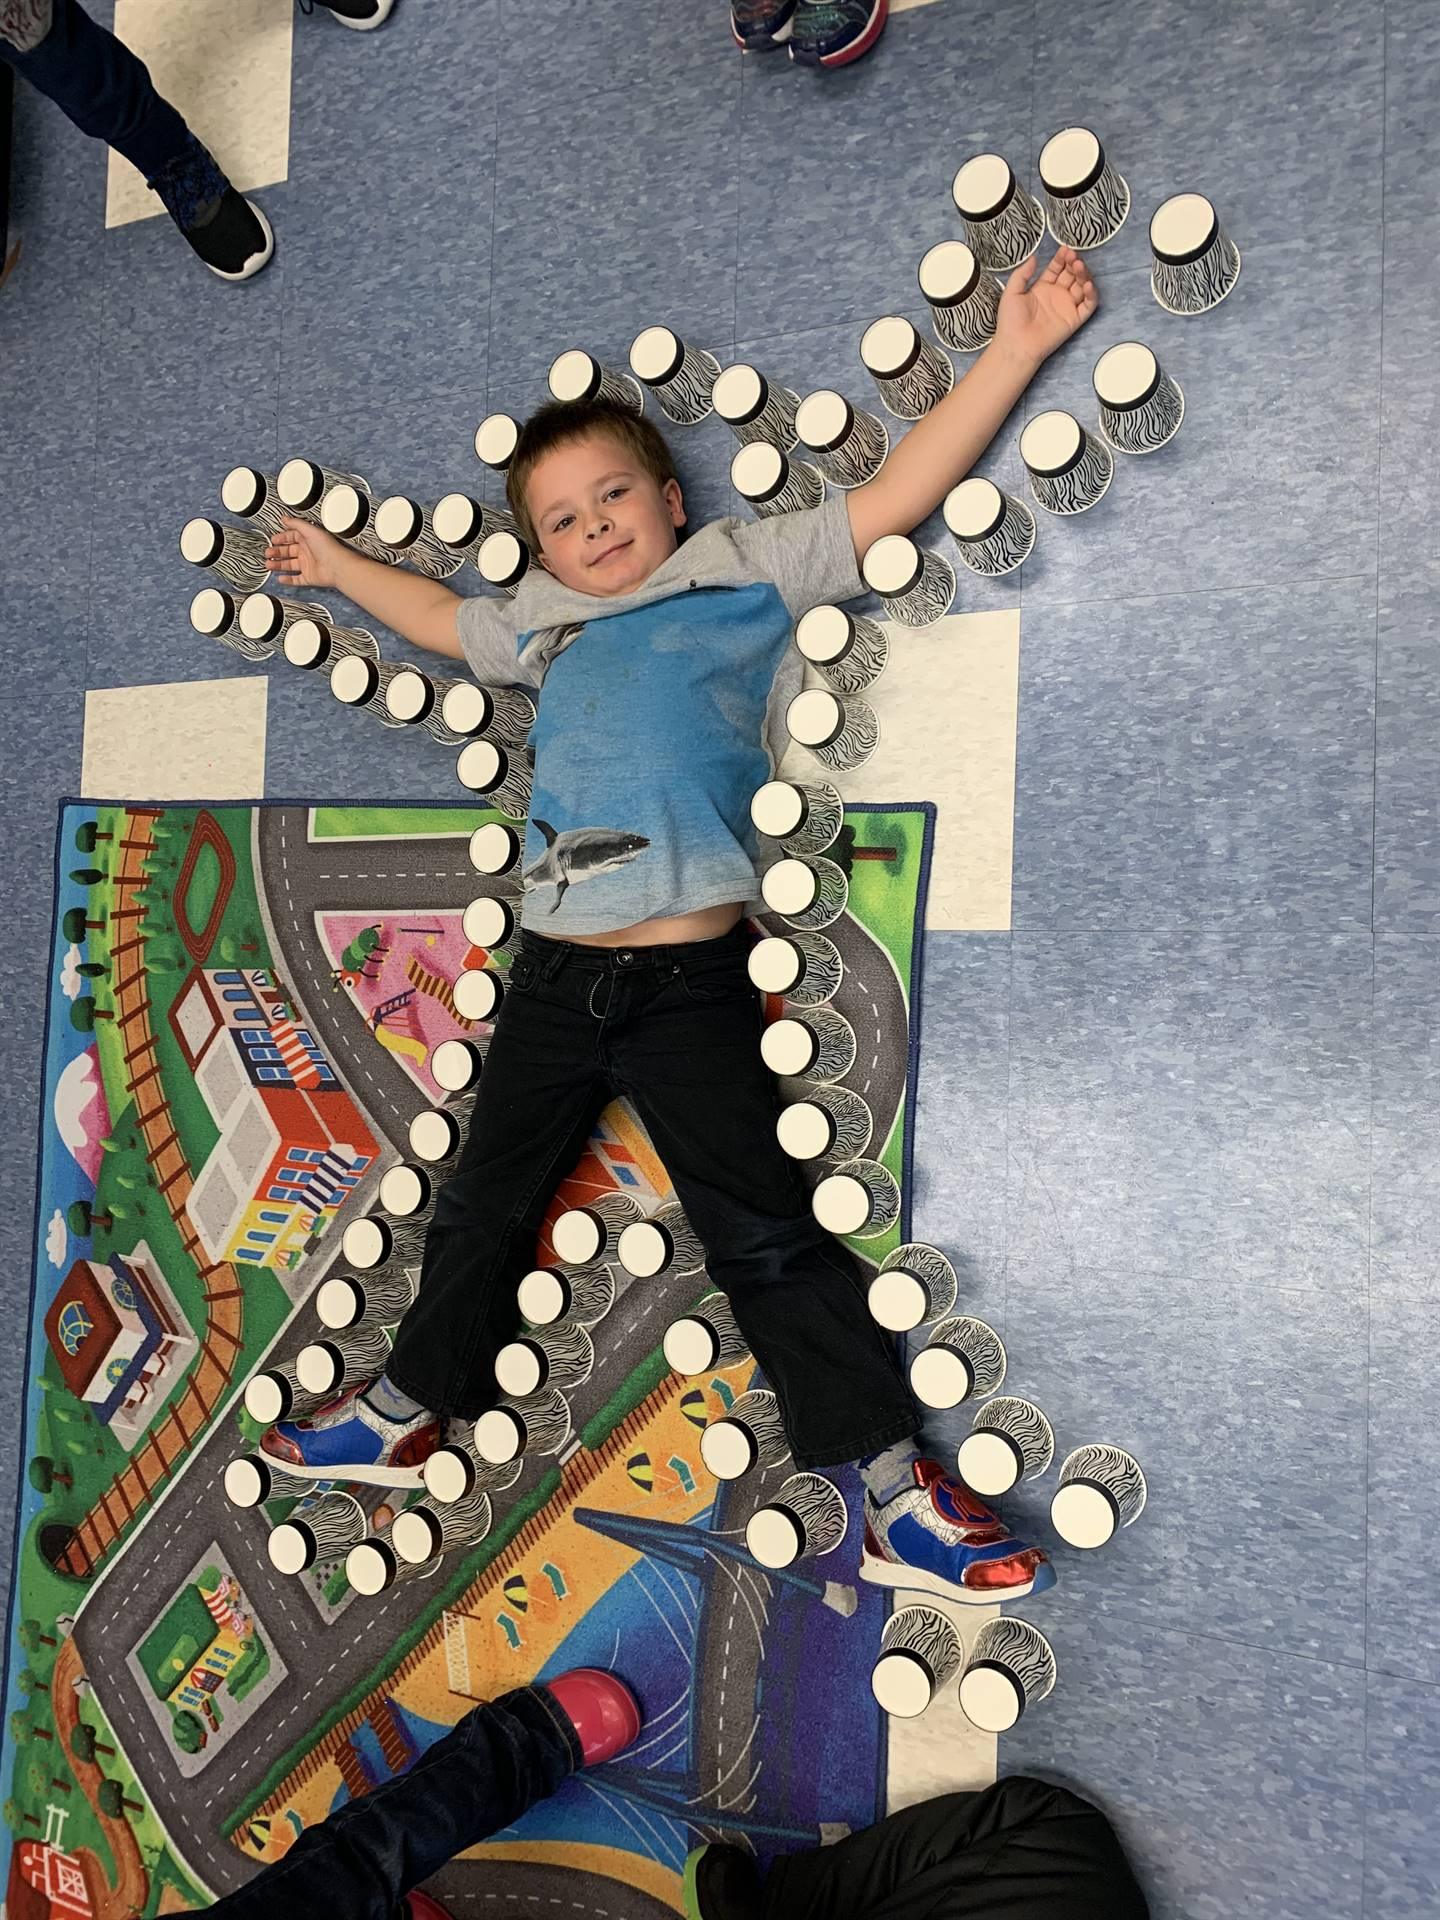 A student lays on floor outlined by cups.